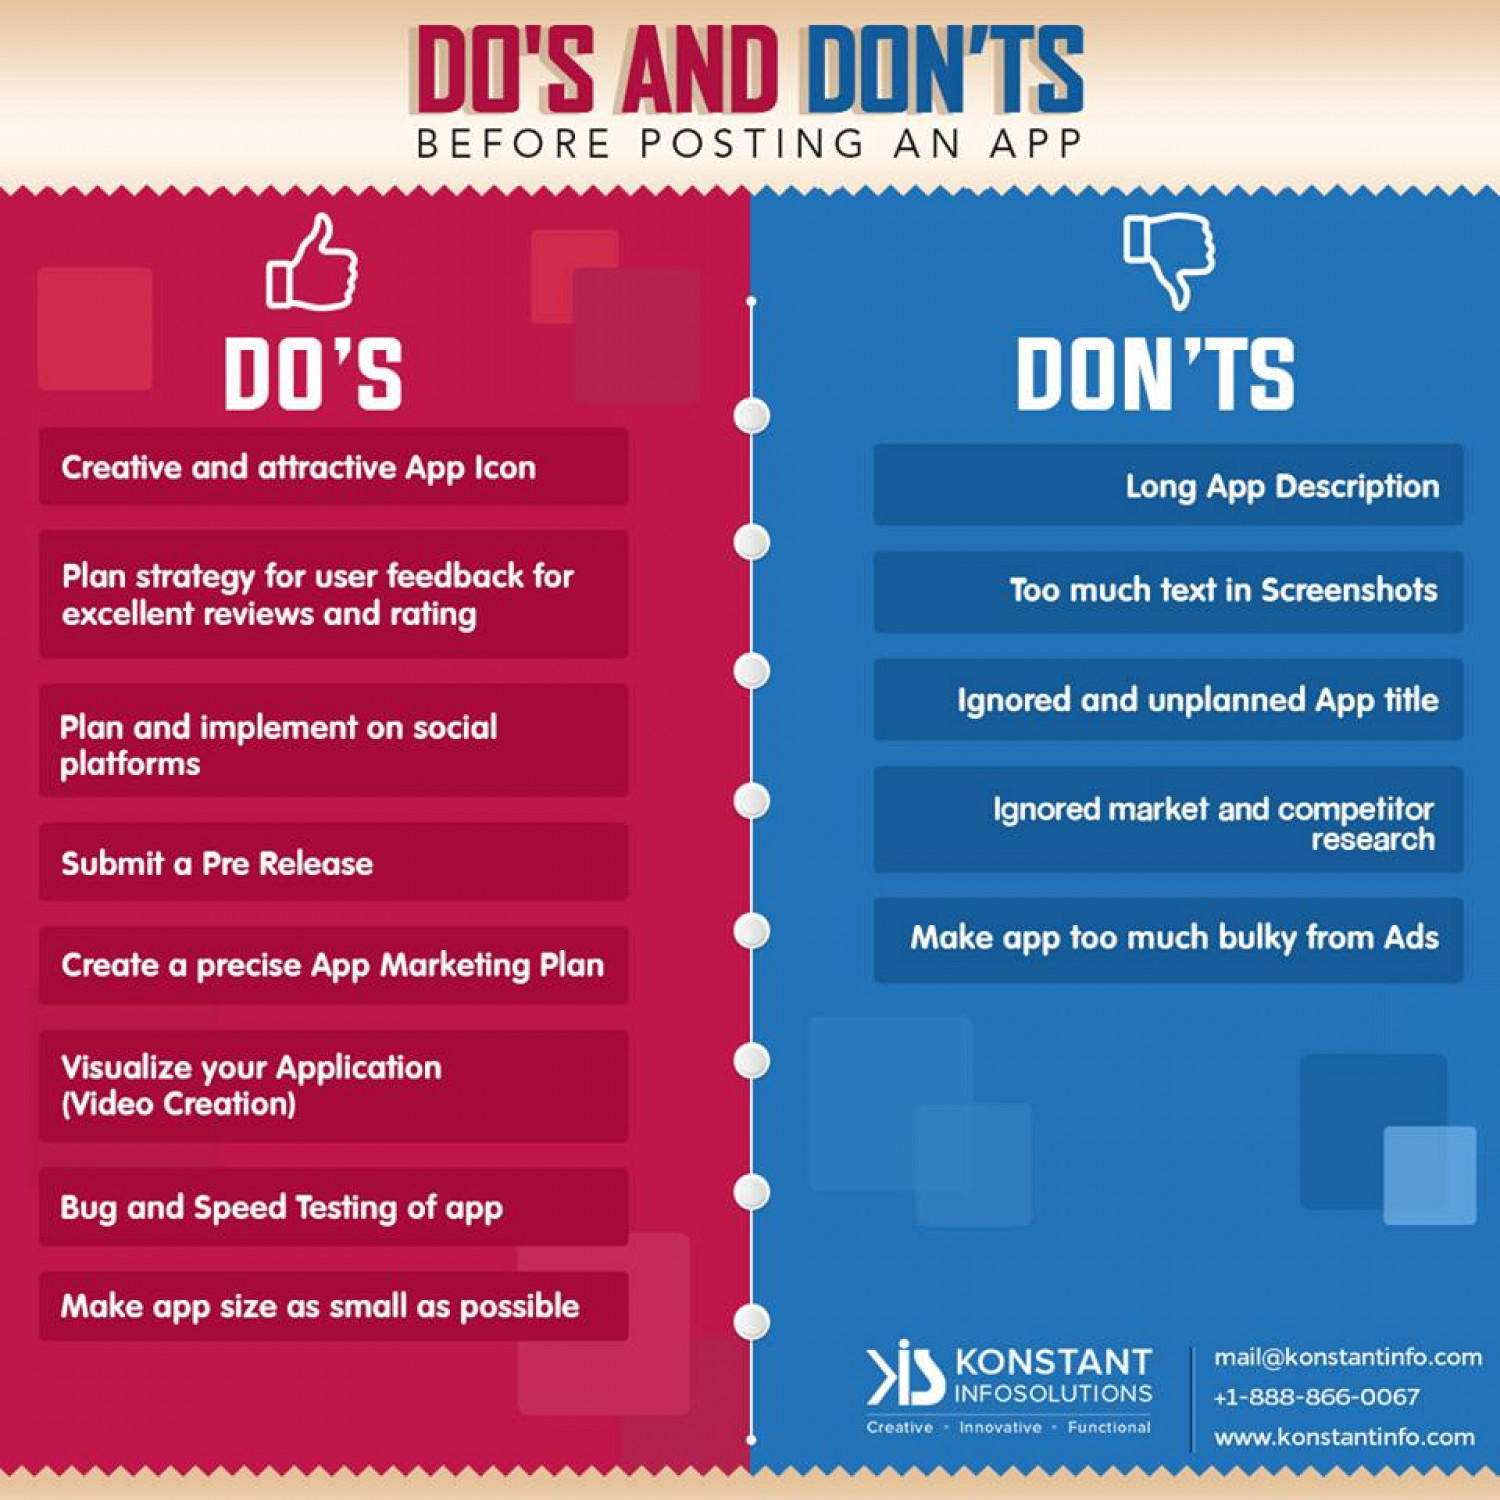 Do's and Don'ts Before Posting an App Infographic